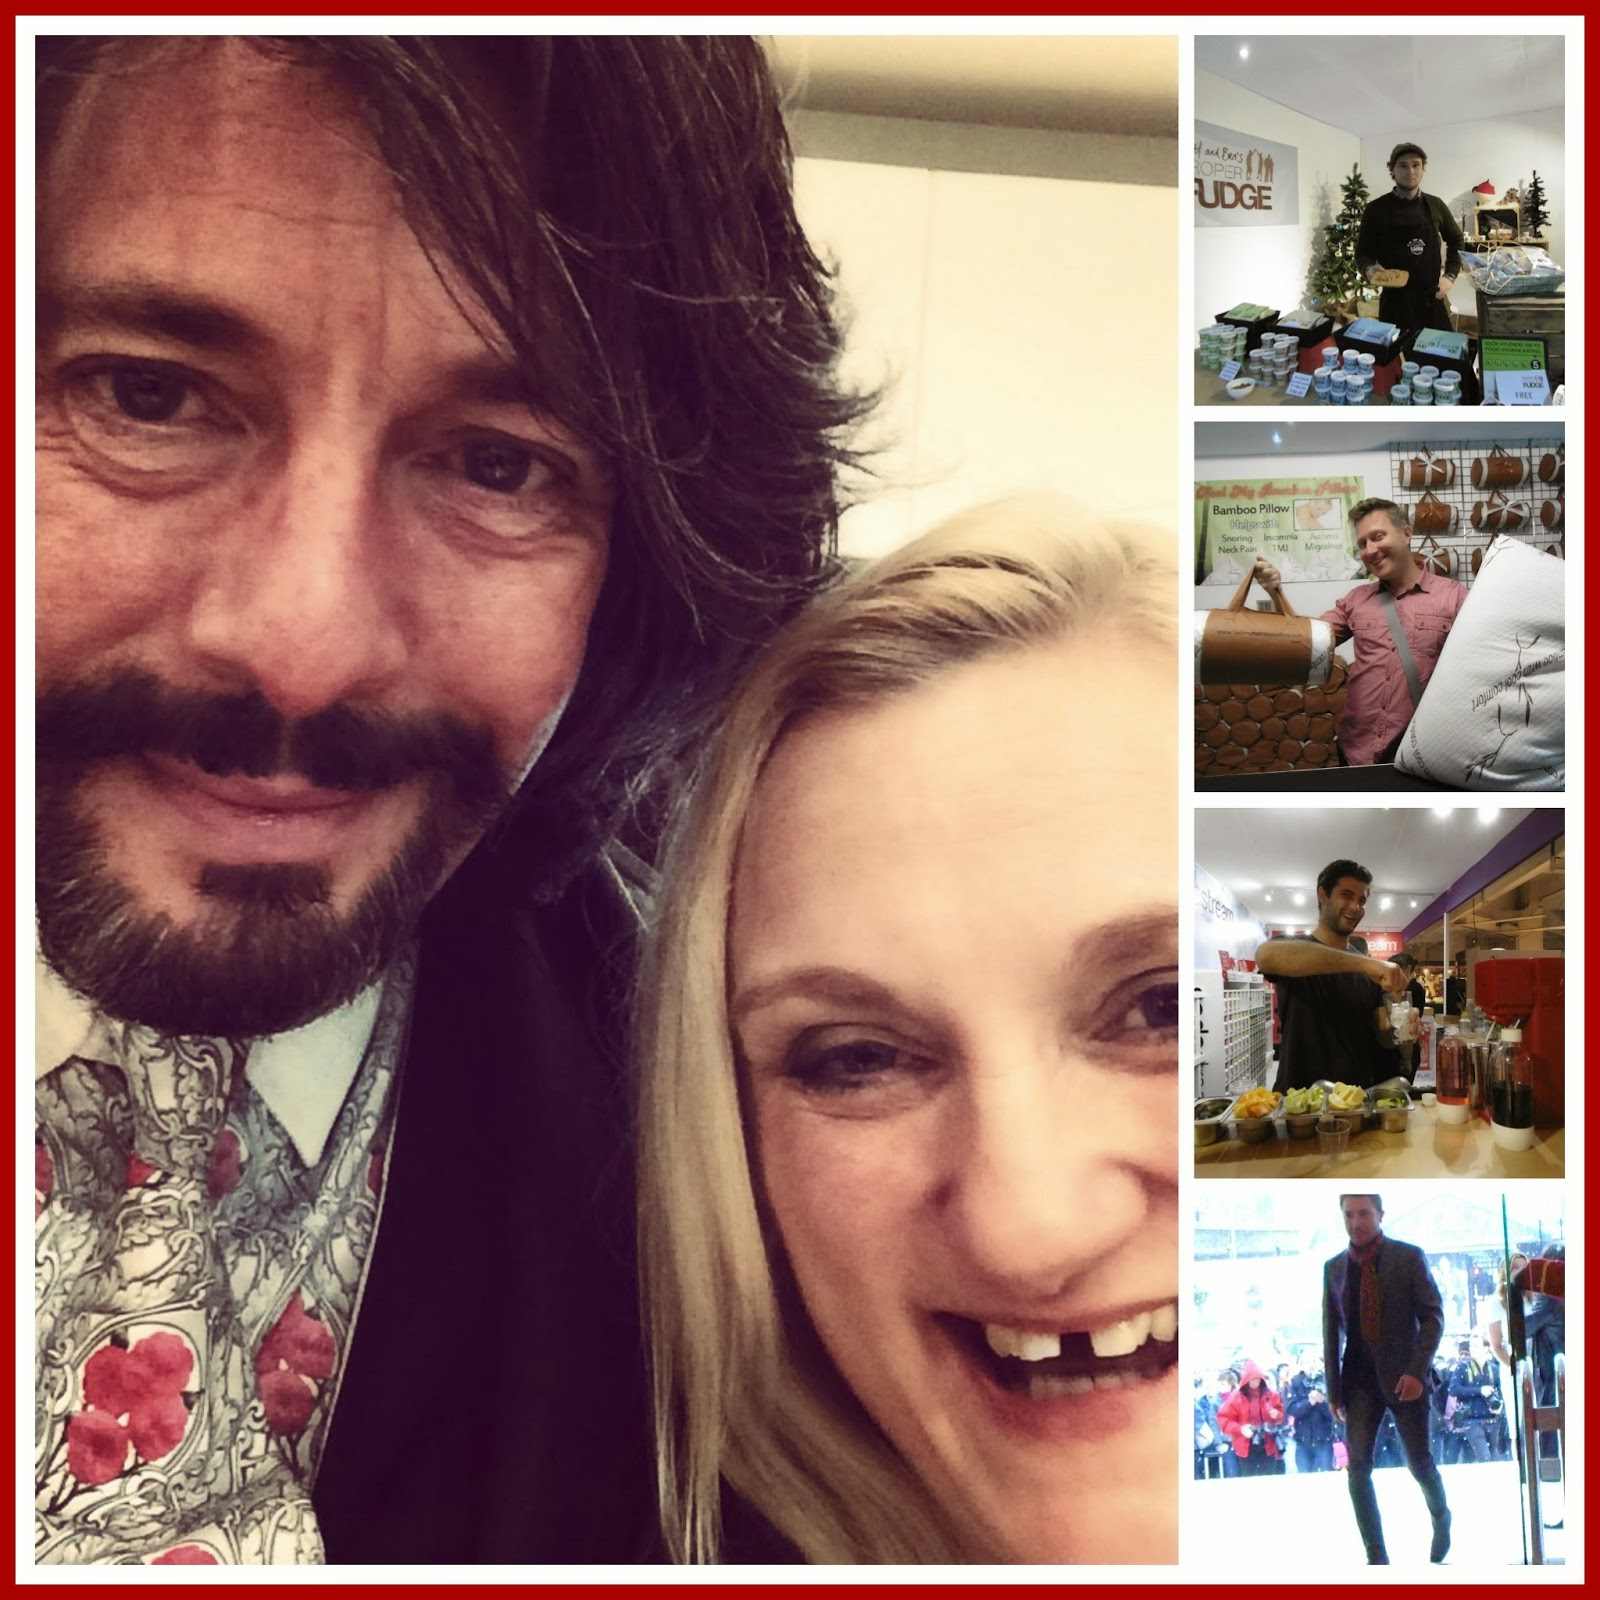 Laurence Llewelyn-Bowen, Gino D'Acampo and other men at Ideal Home Show